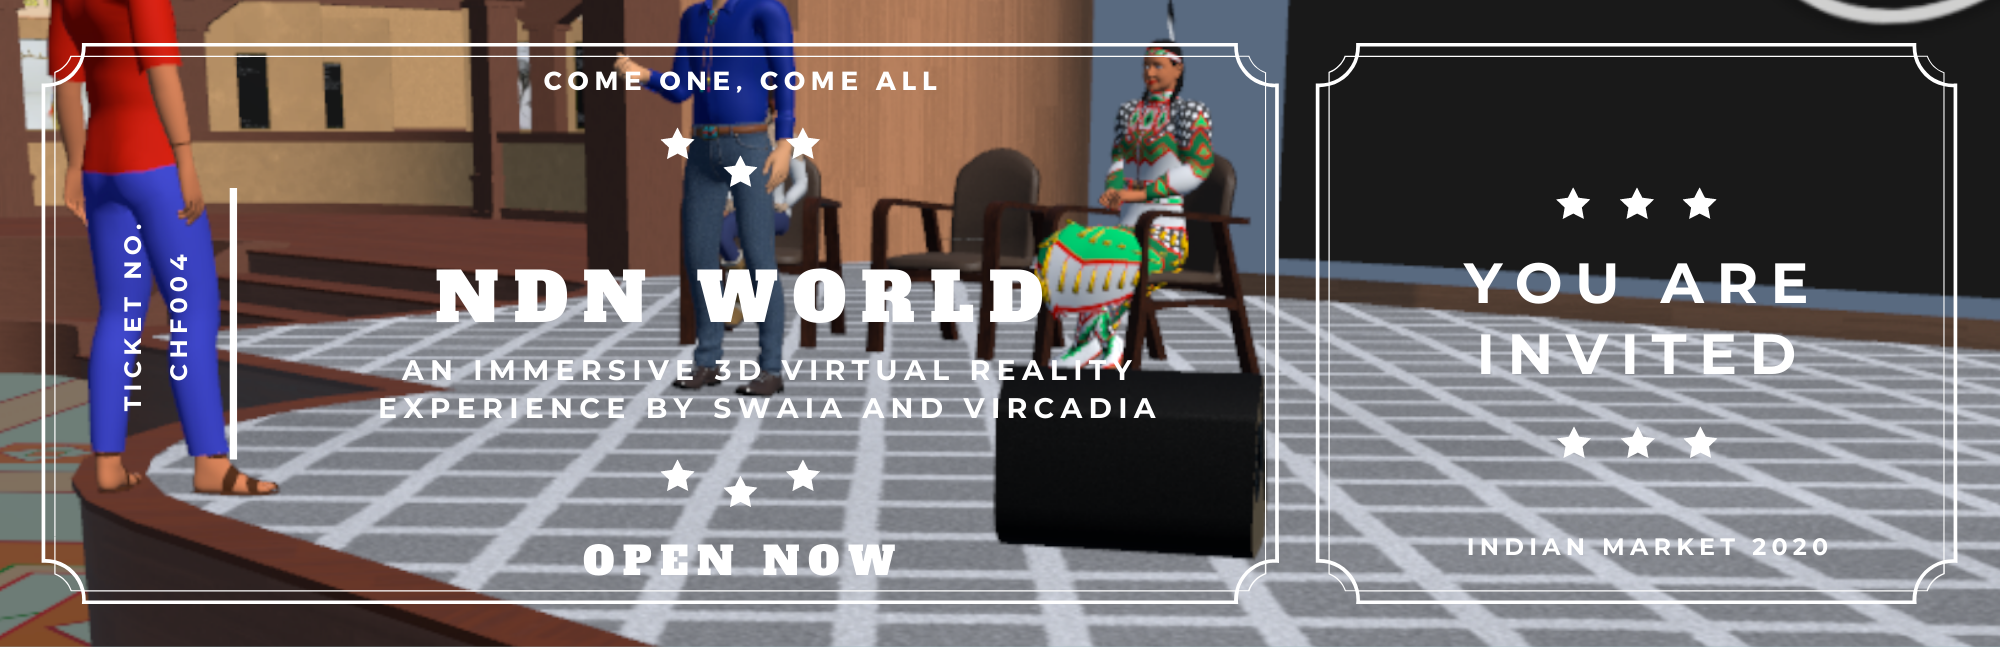 NDN World by Vircadia - VR for the 21st Century